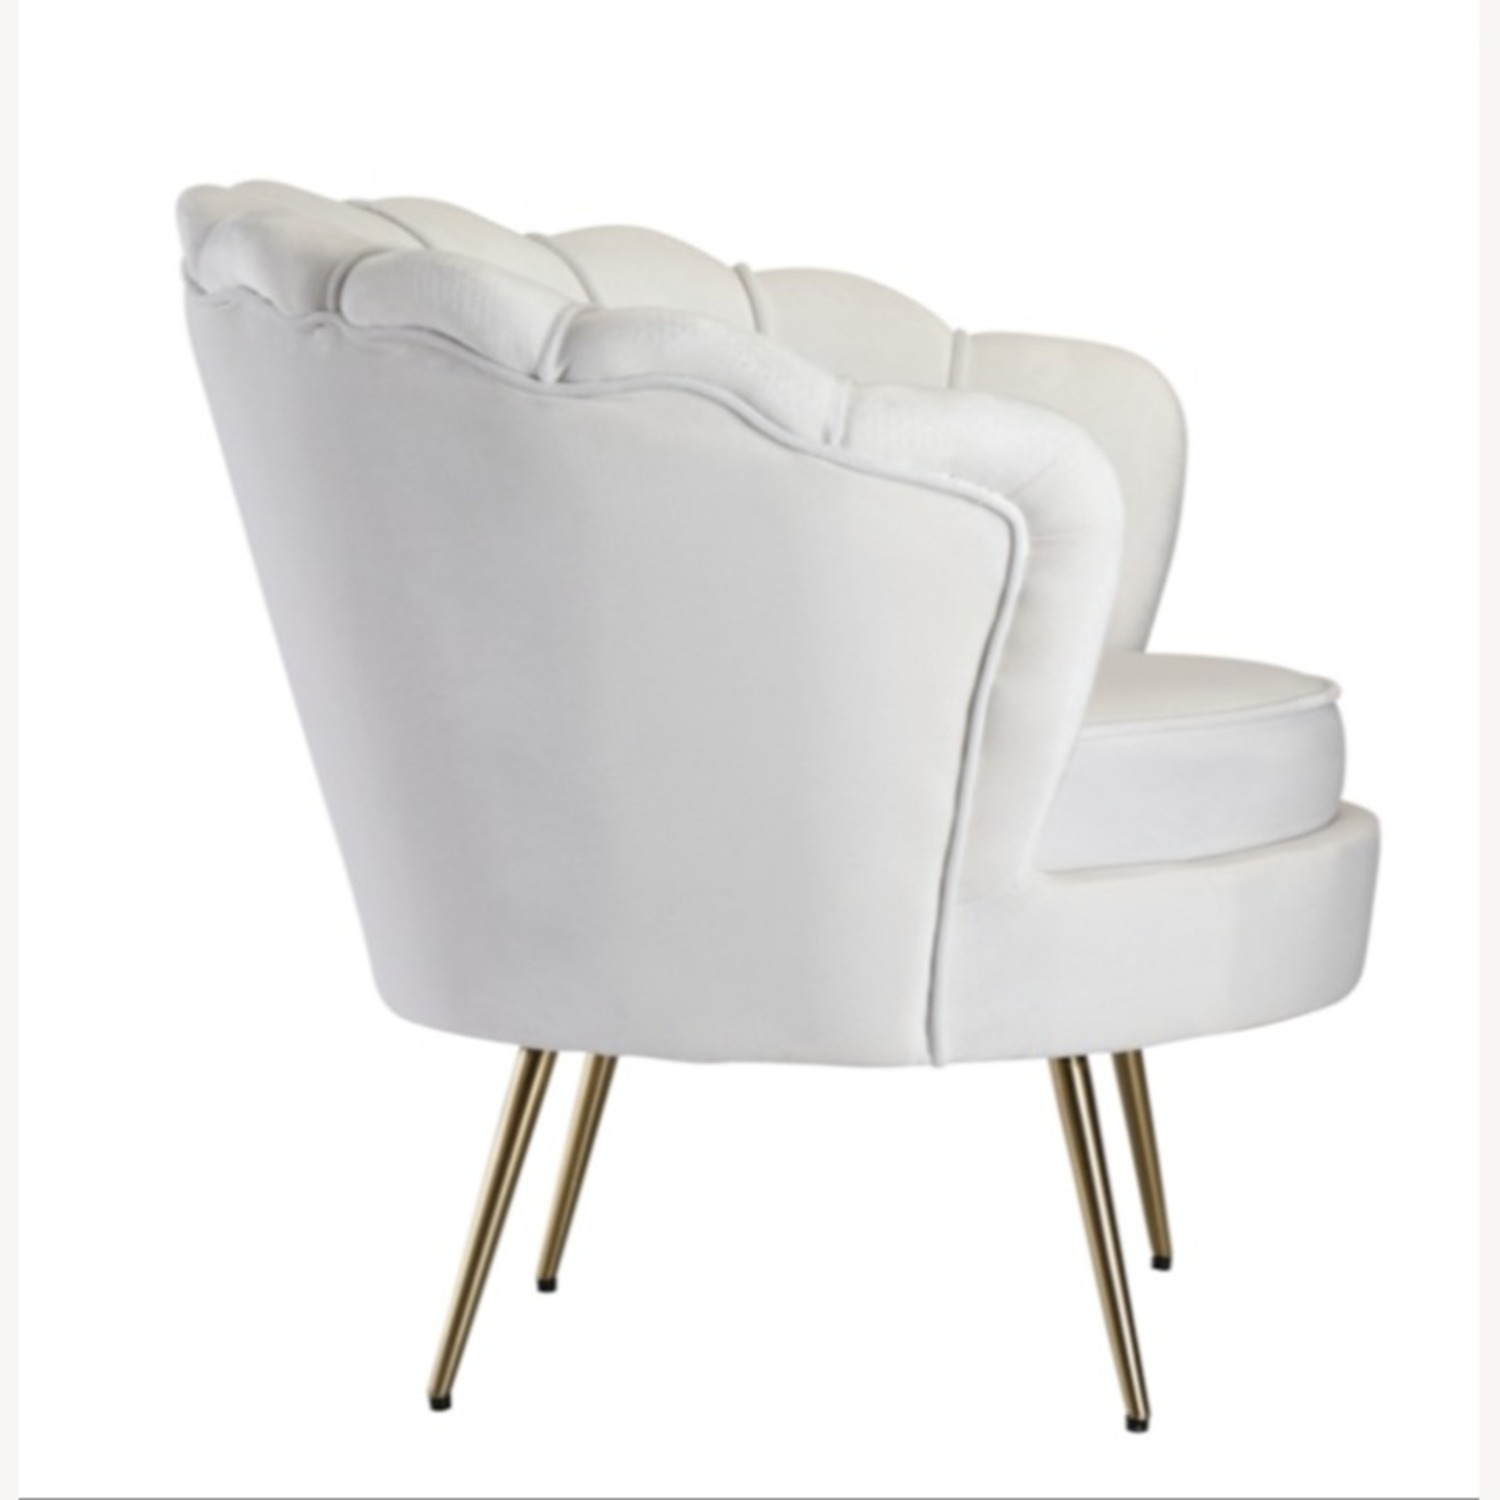 Modern Bridal Chair In White Suede Fabric - image-2